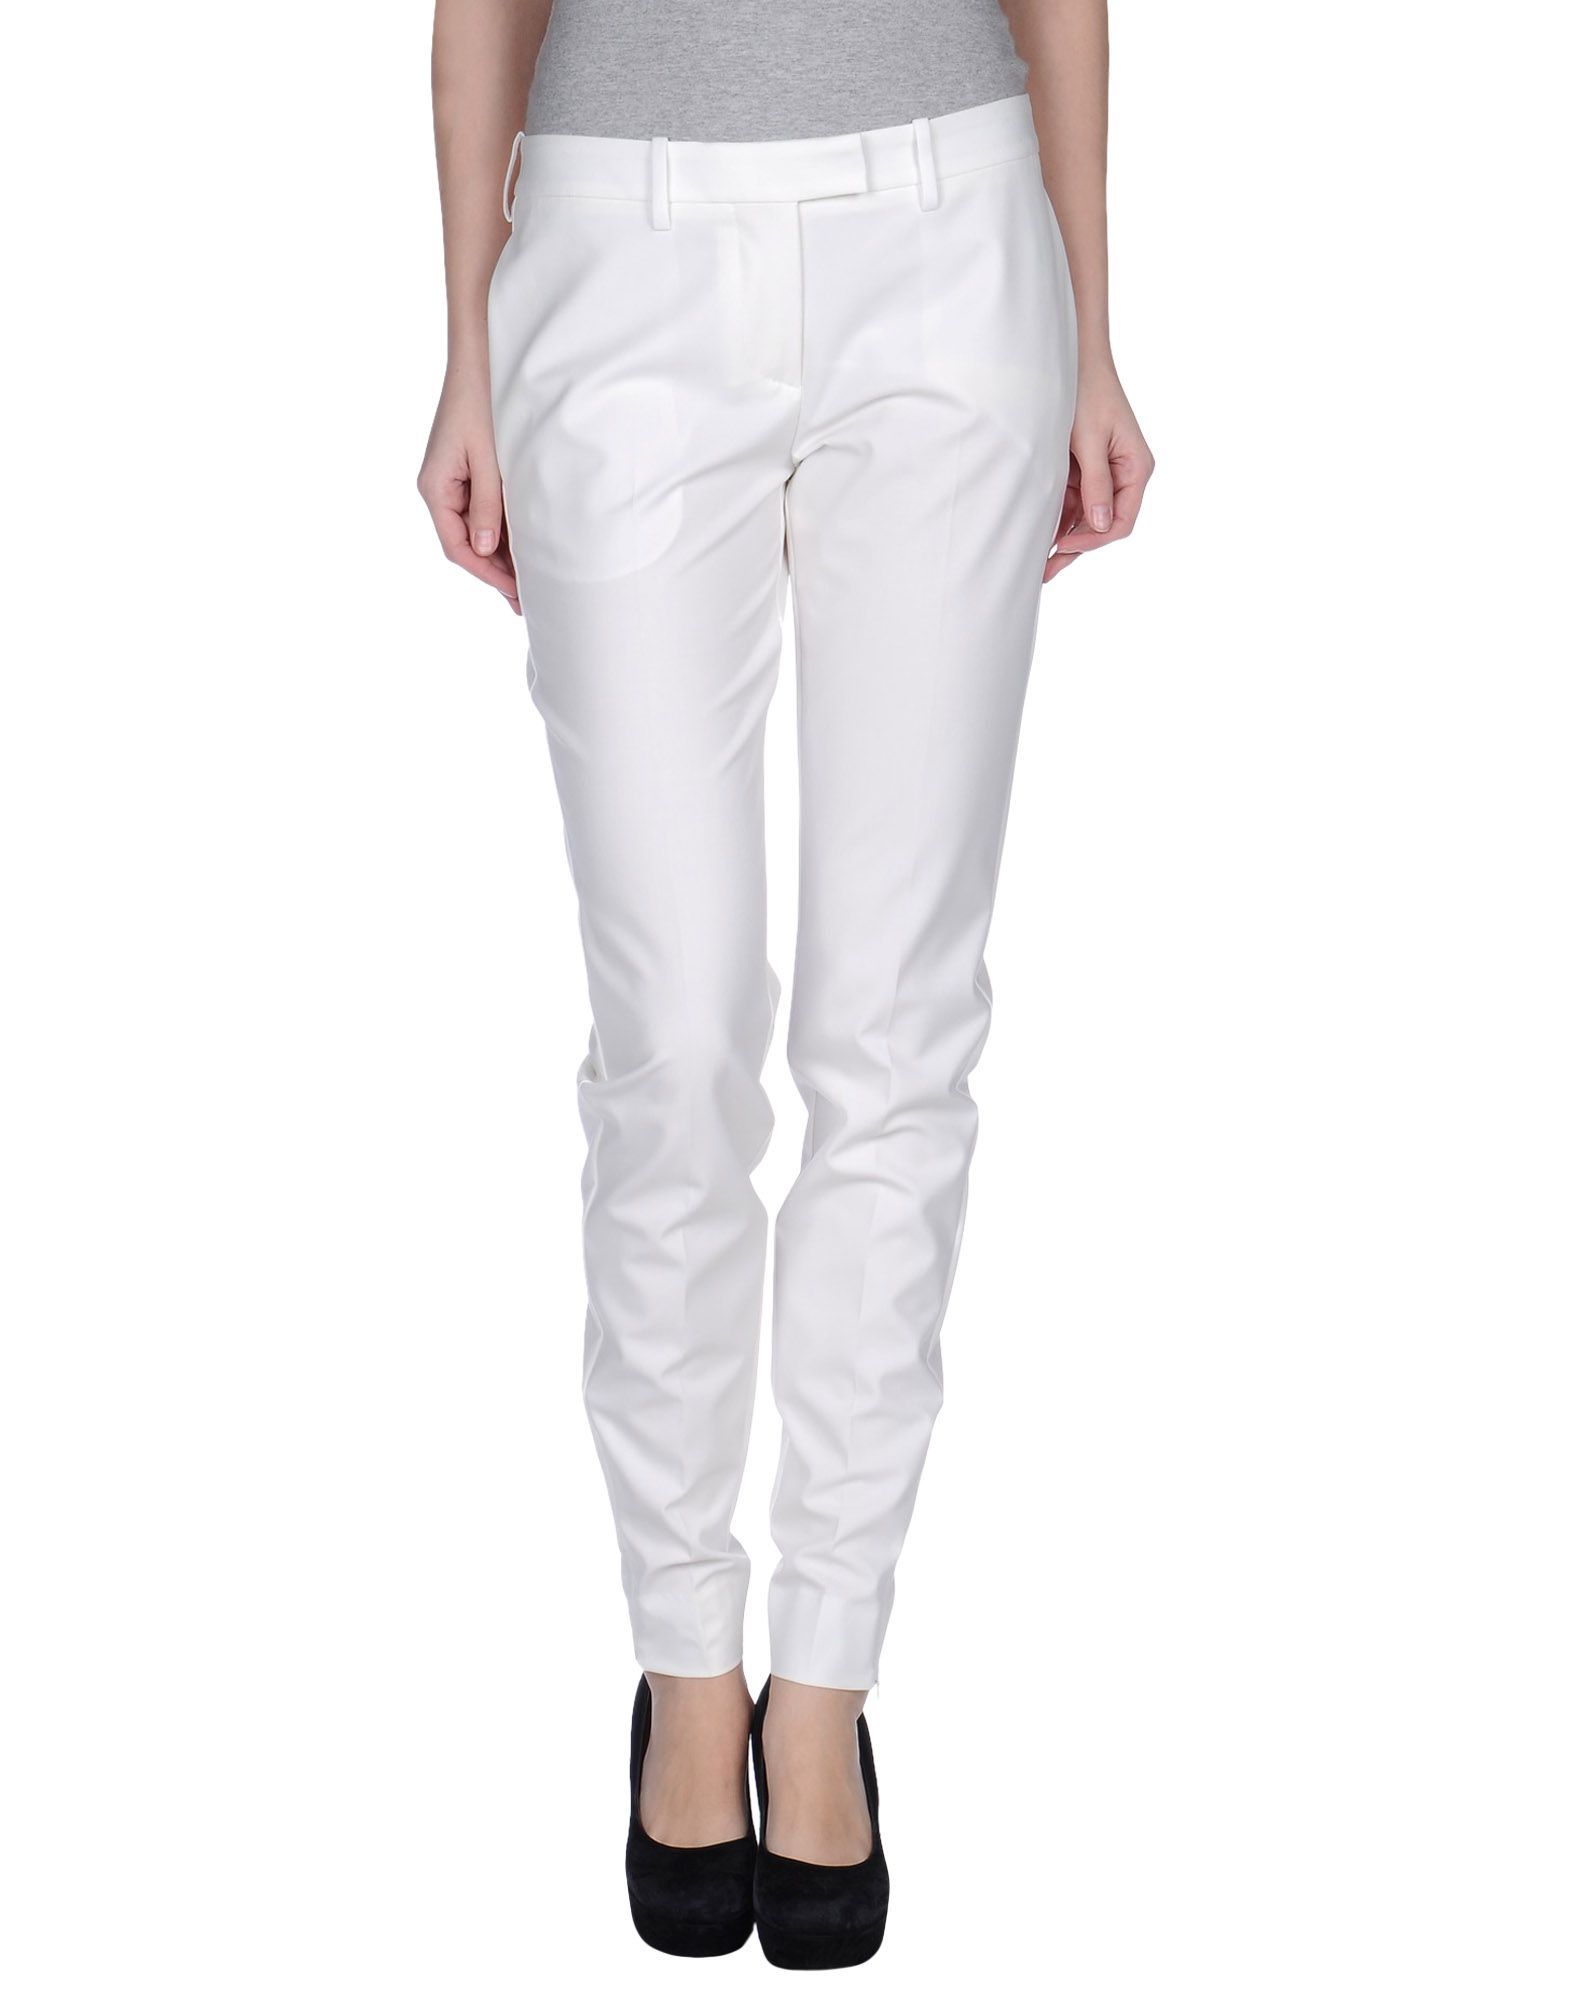 Maison Margiela Casual Pants In White Lyst